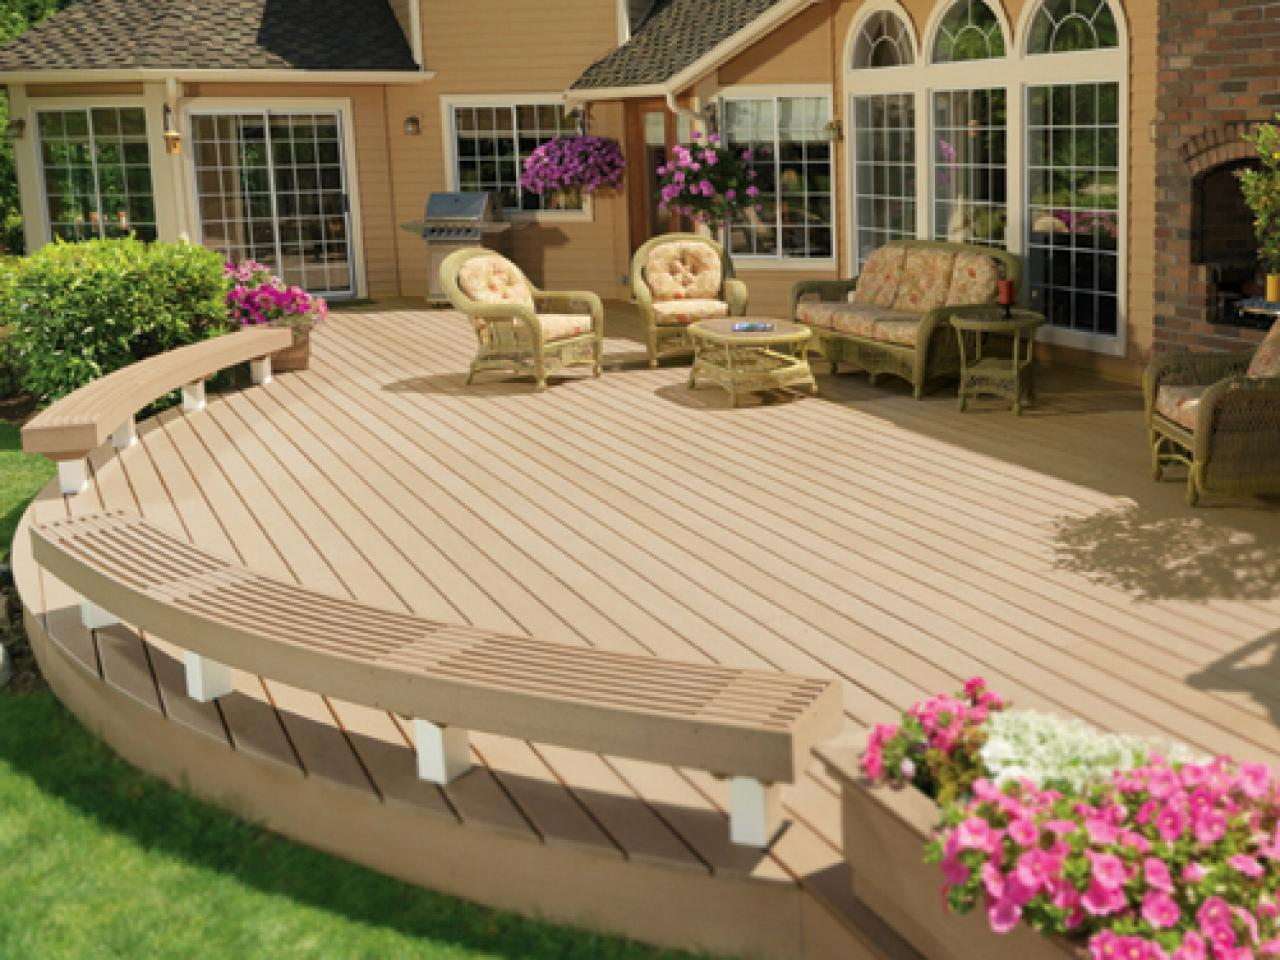 Deck design ideas outdoor design landscaping ideas Deck design ideas